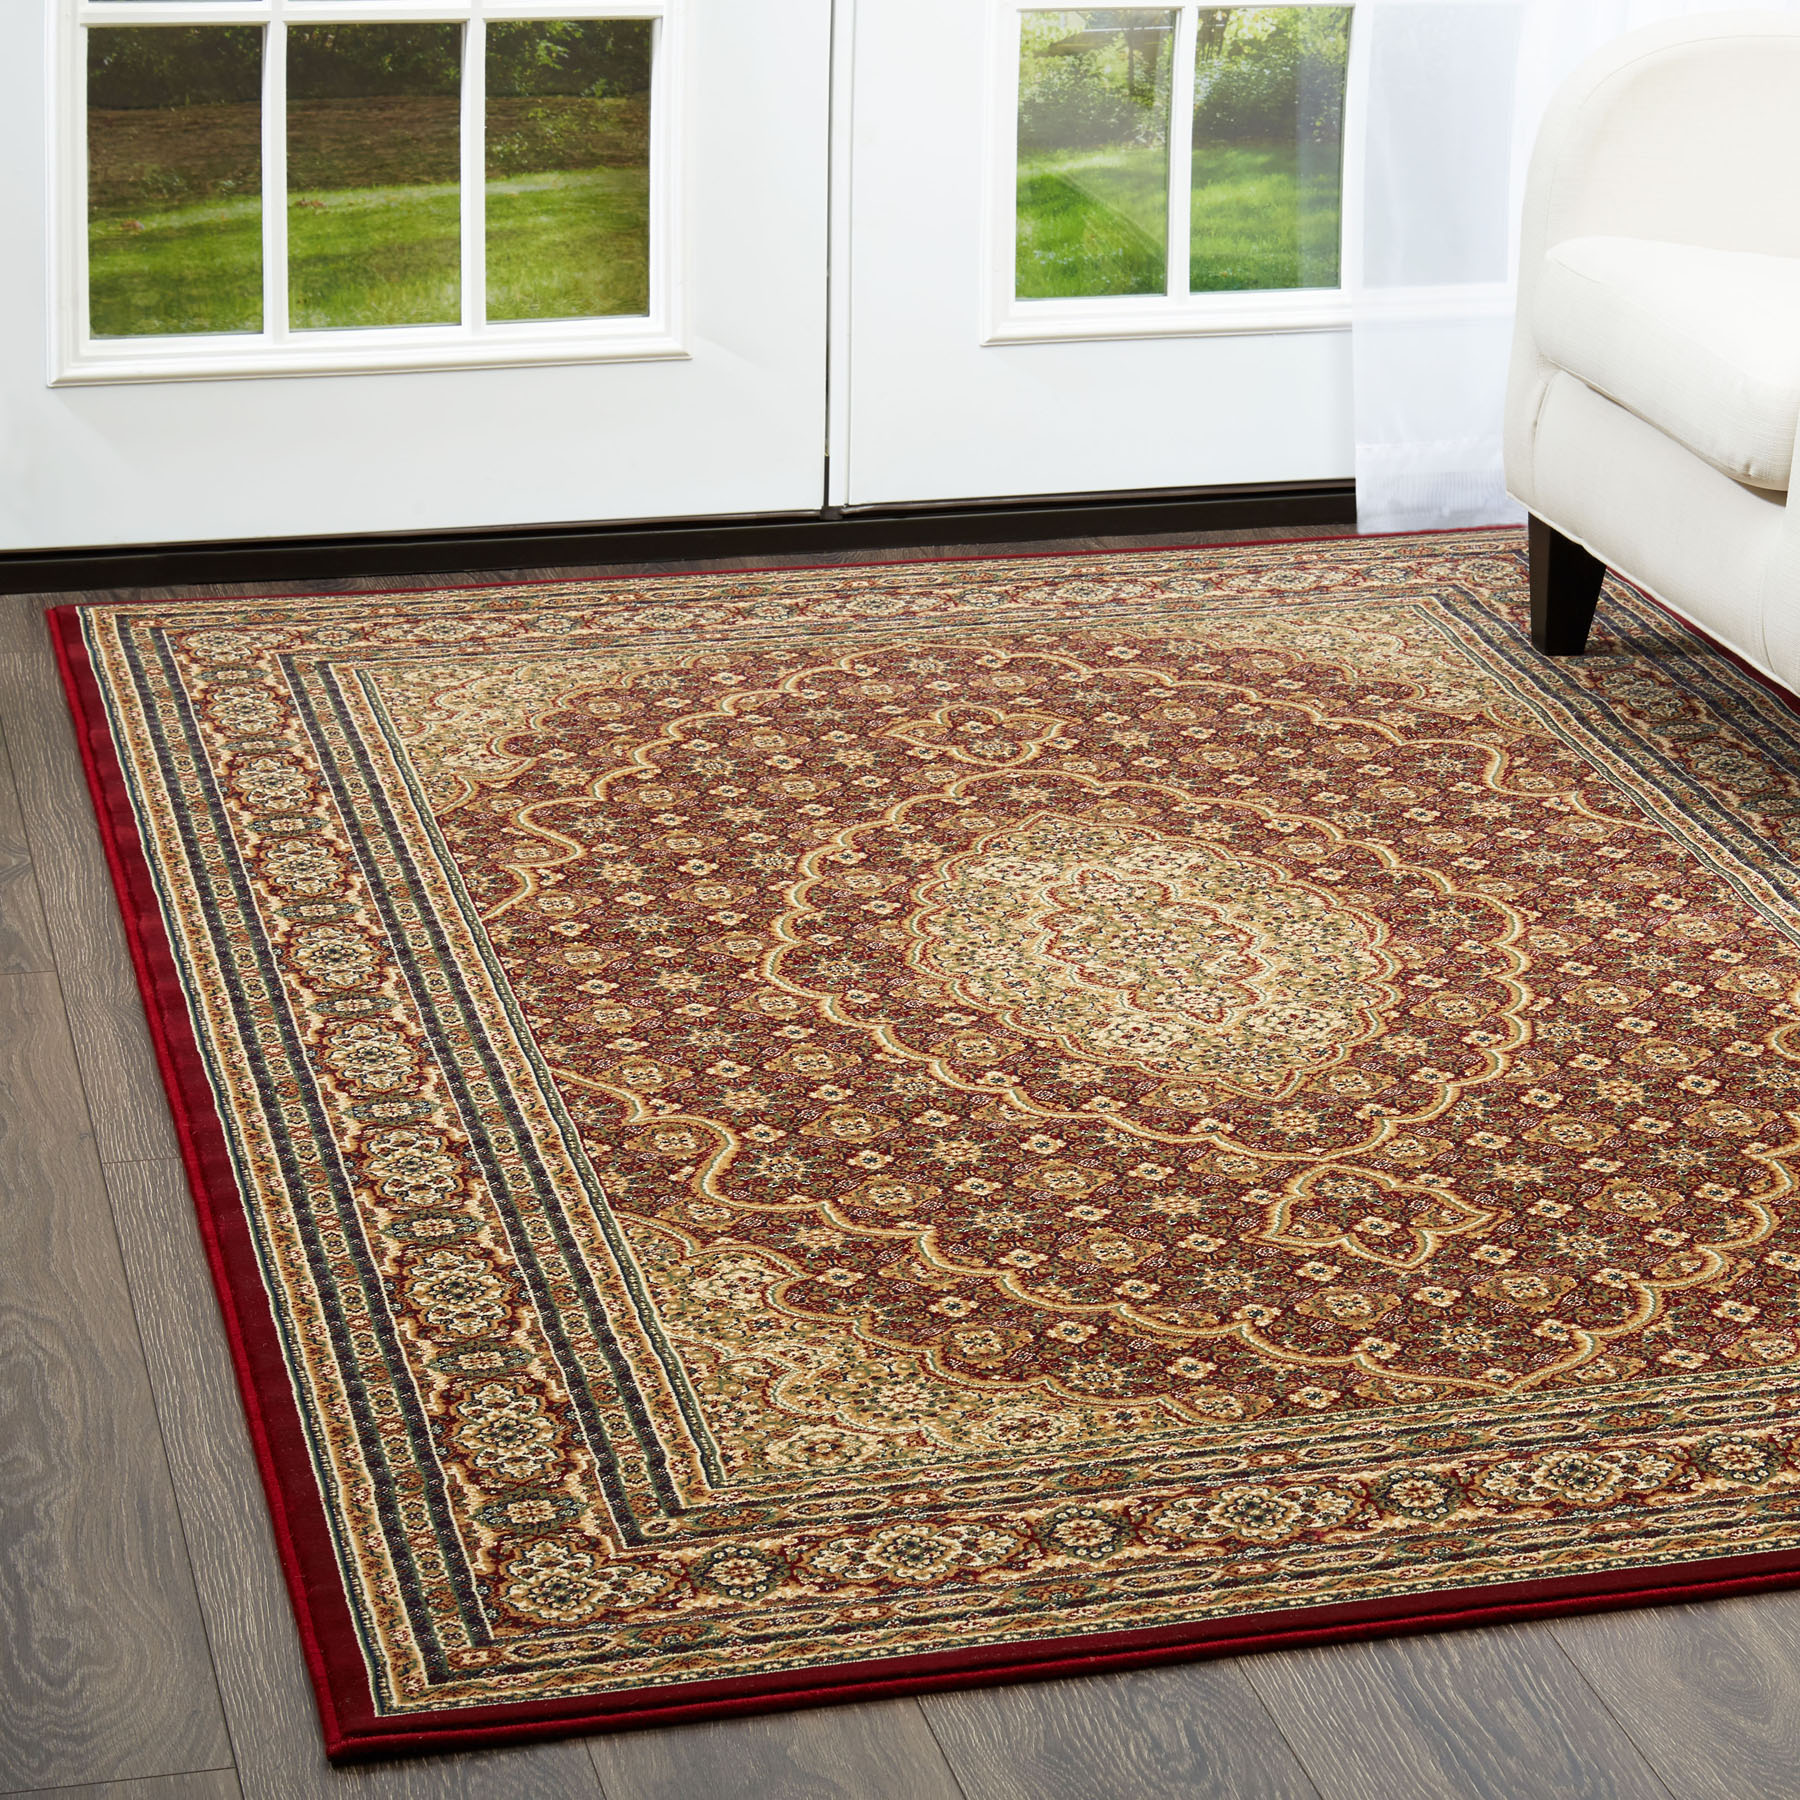 Free S H Red Oriental 3 X 8 Runner Persian Area Rug 90 Actual 2 7